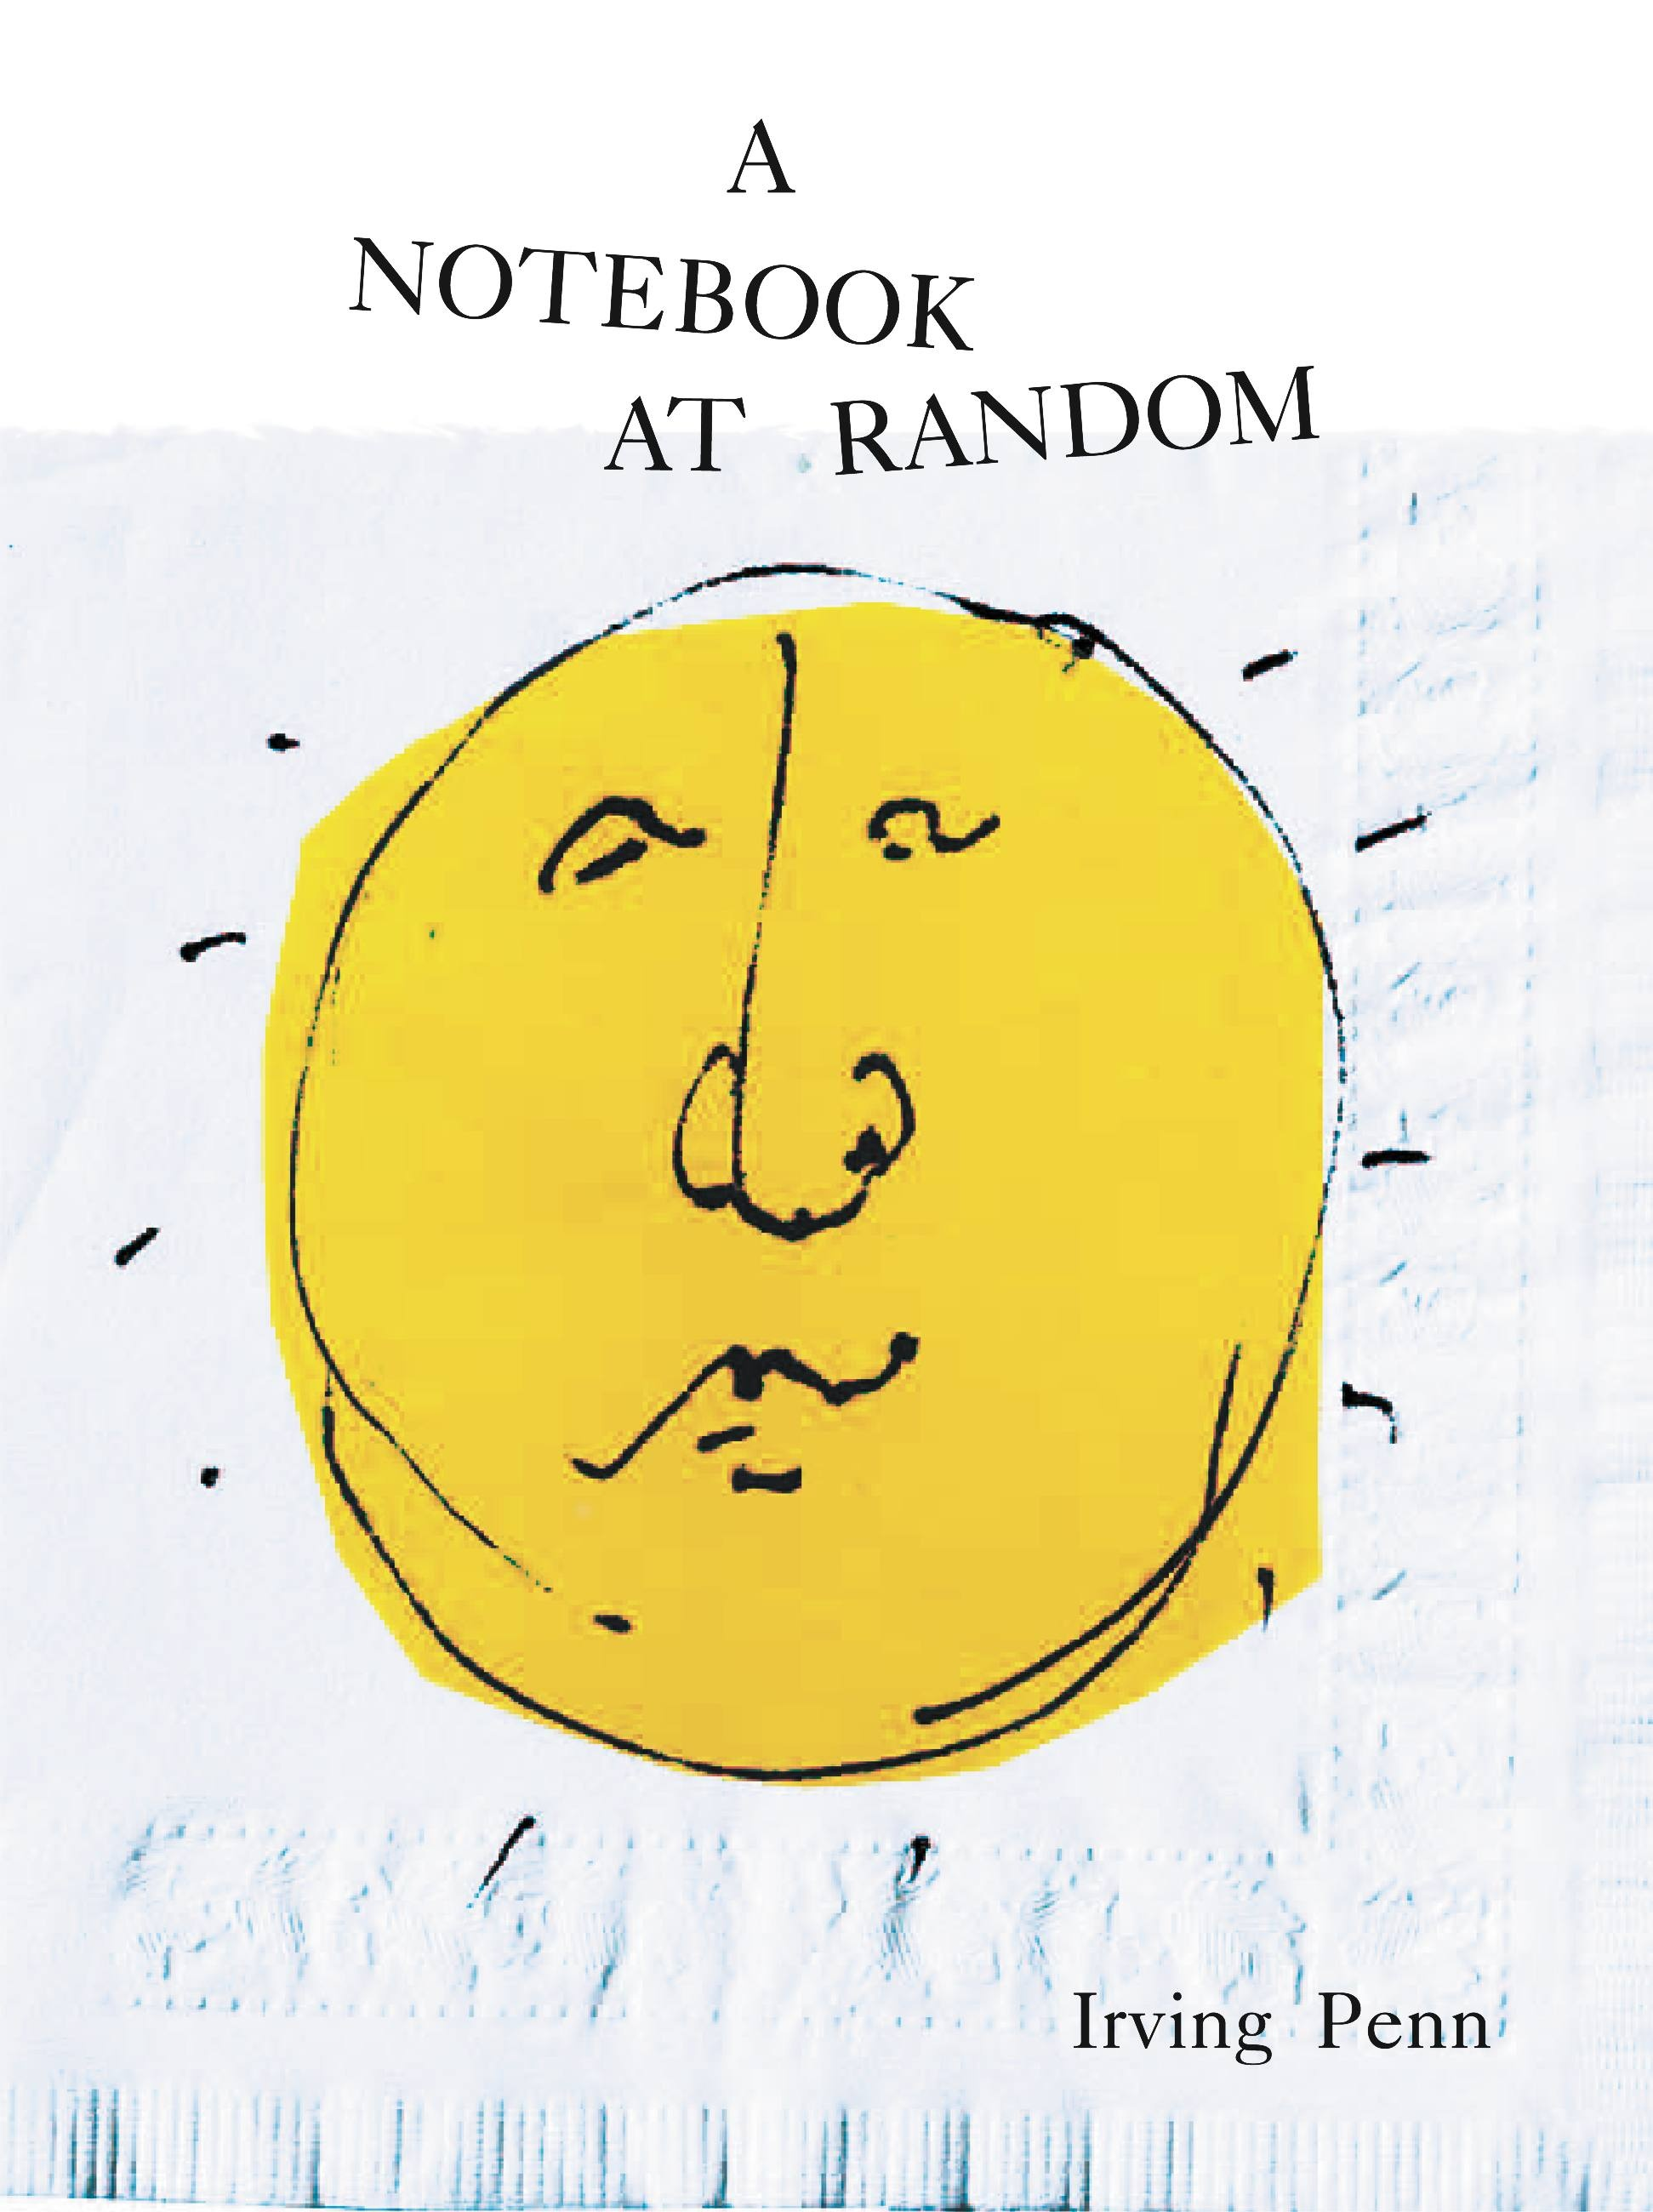 A Notebook at Random